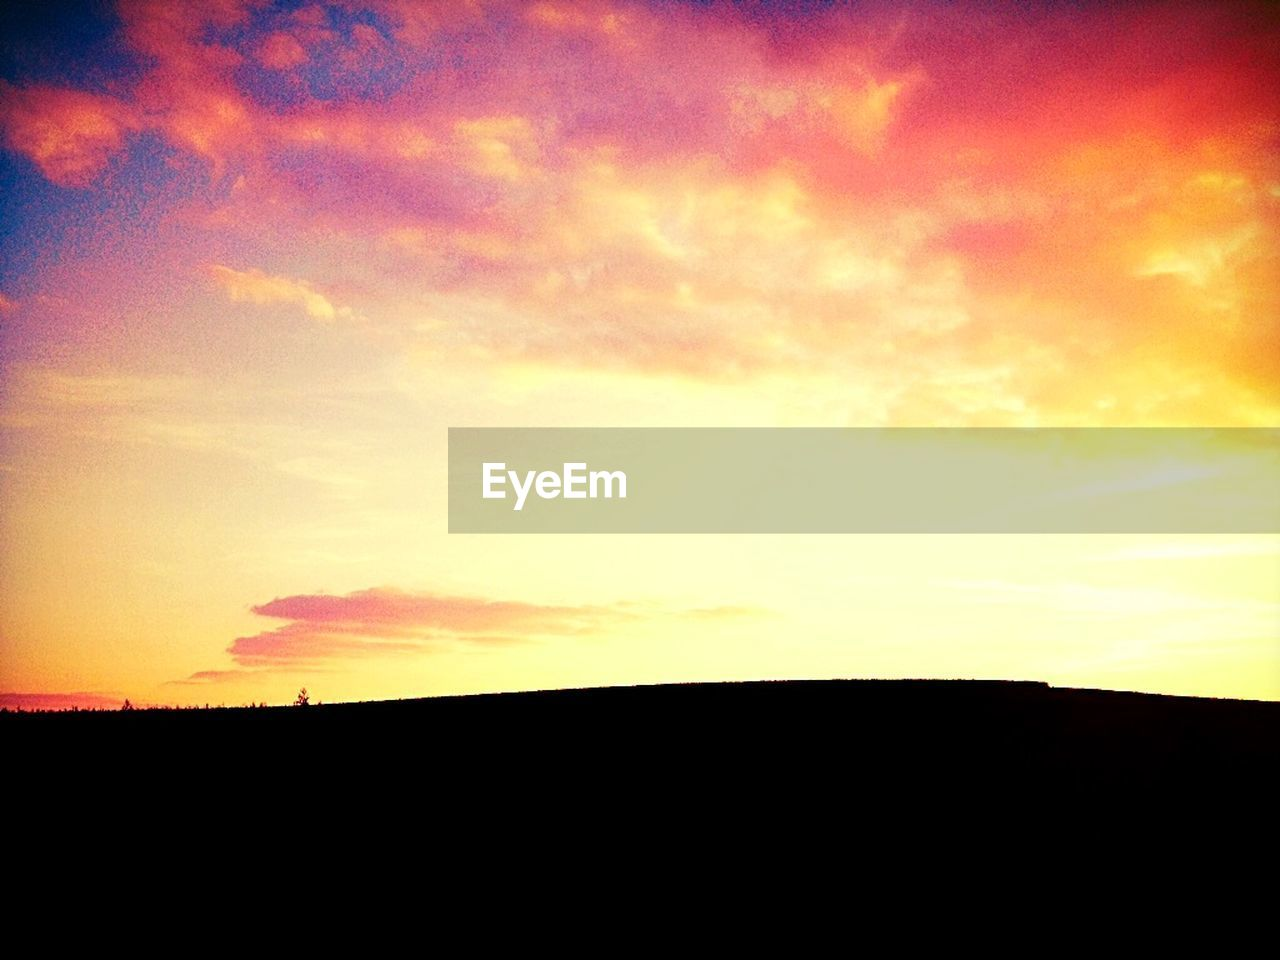 sunset, silhouette, sky, nature, dark, scenics, beauty in nature, yellow, landscape, no people, outdoors